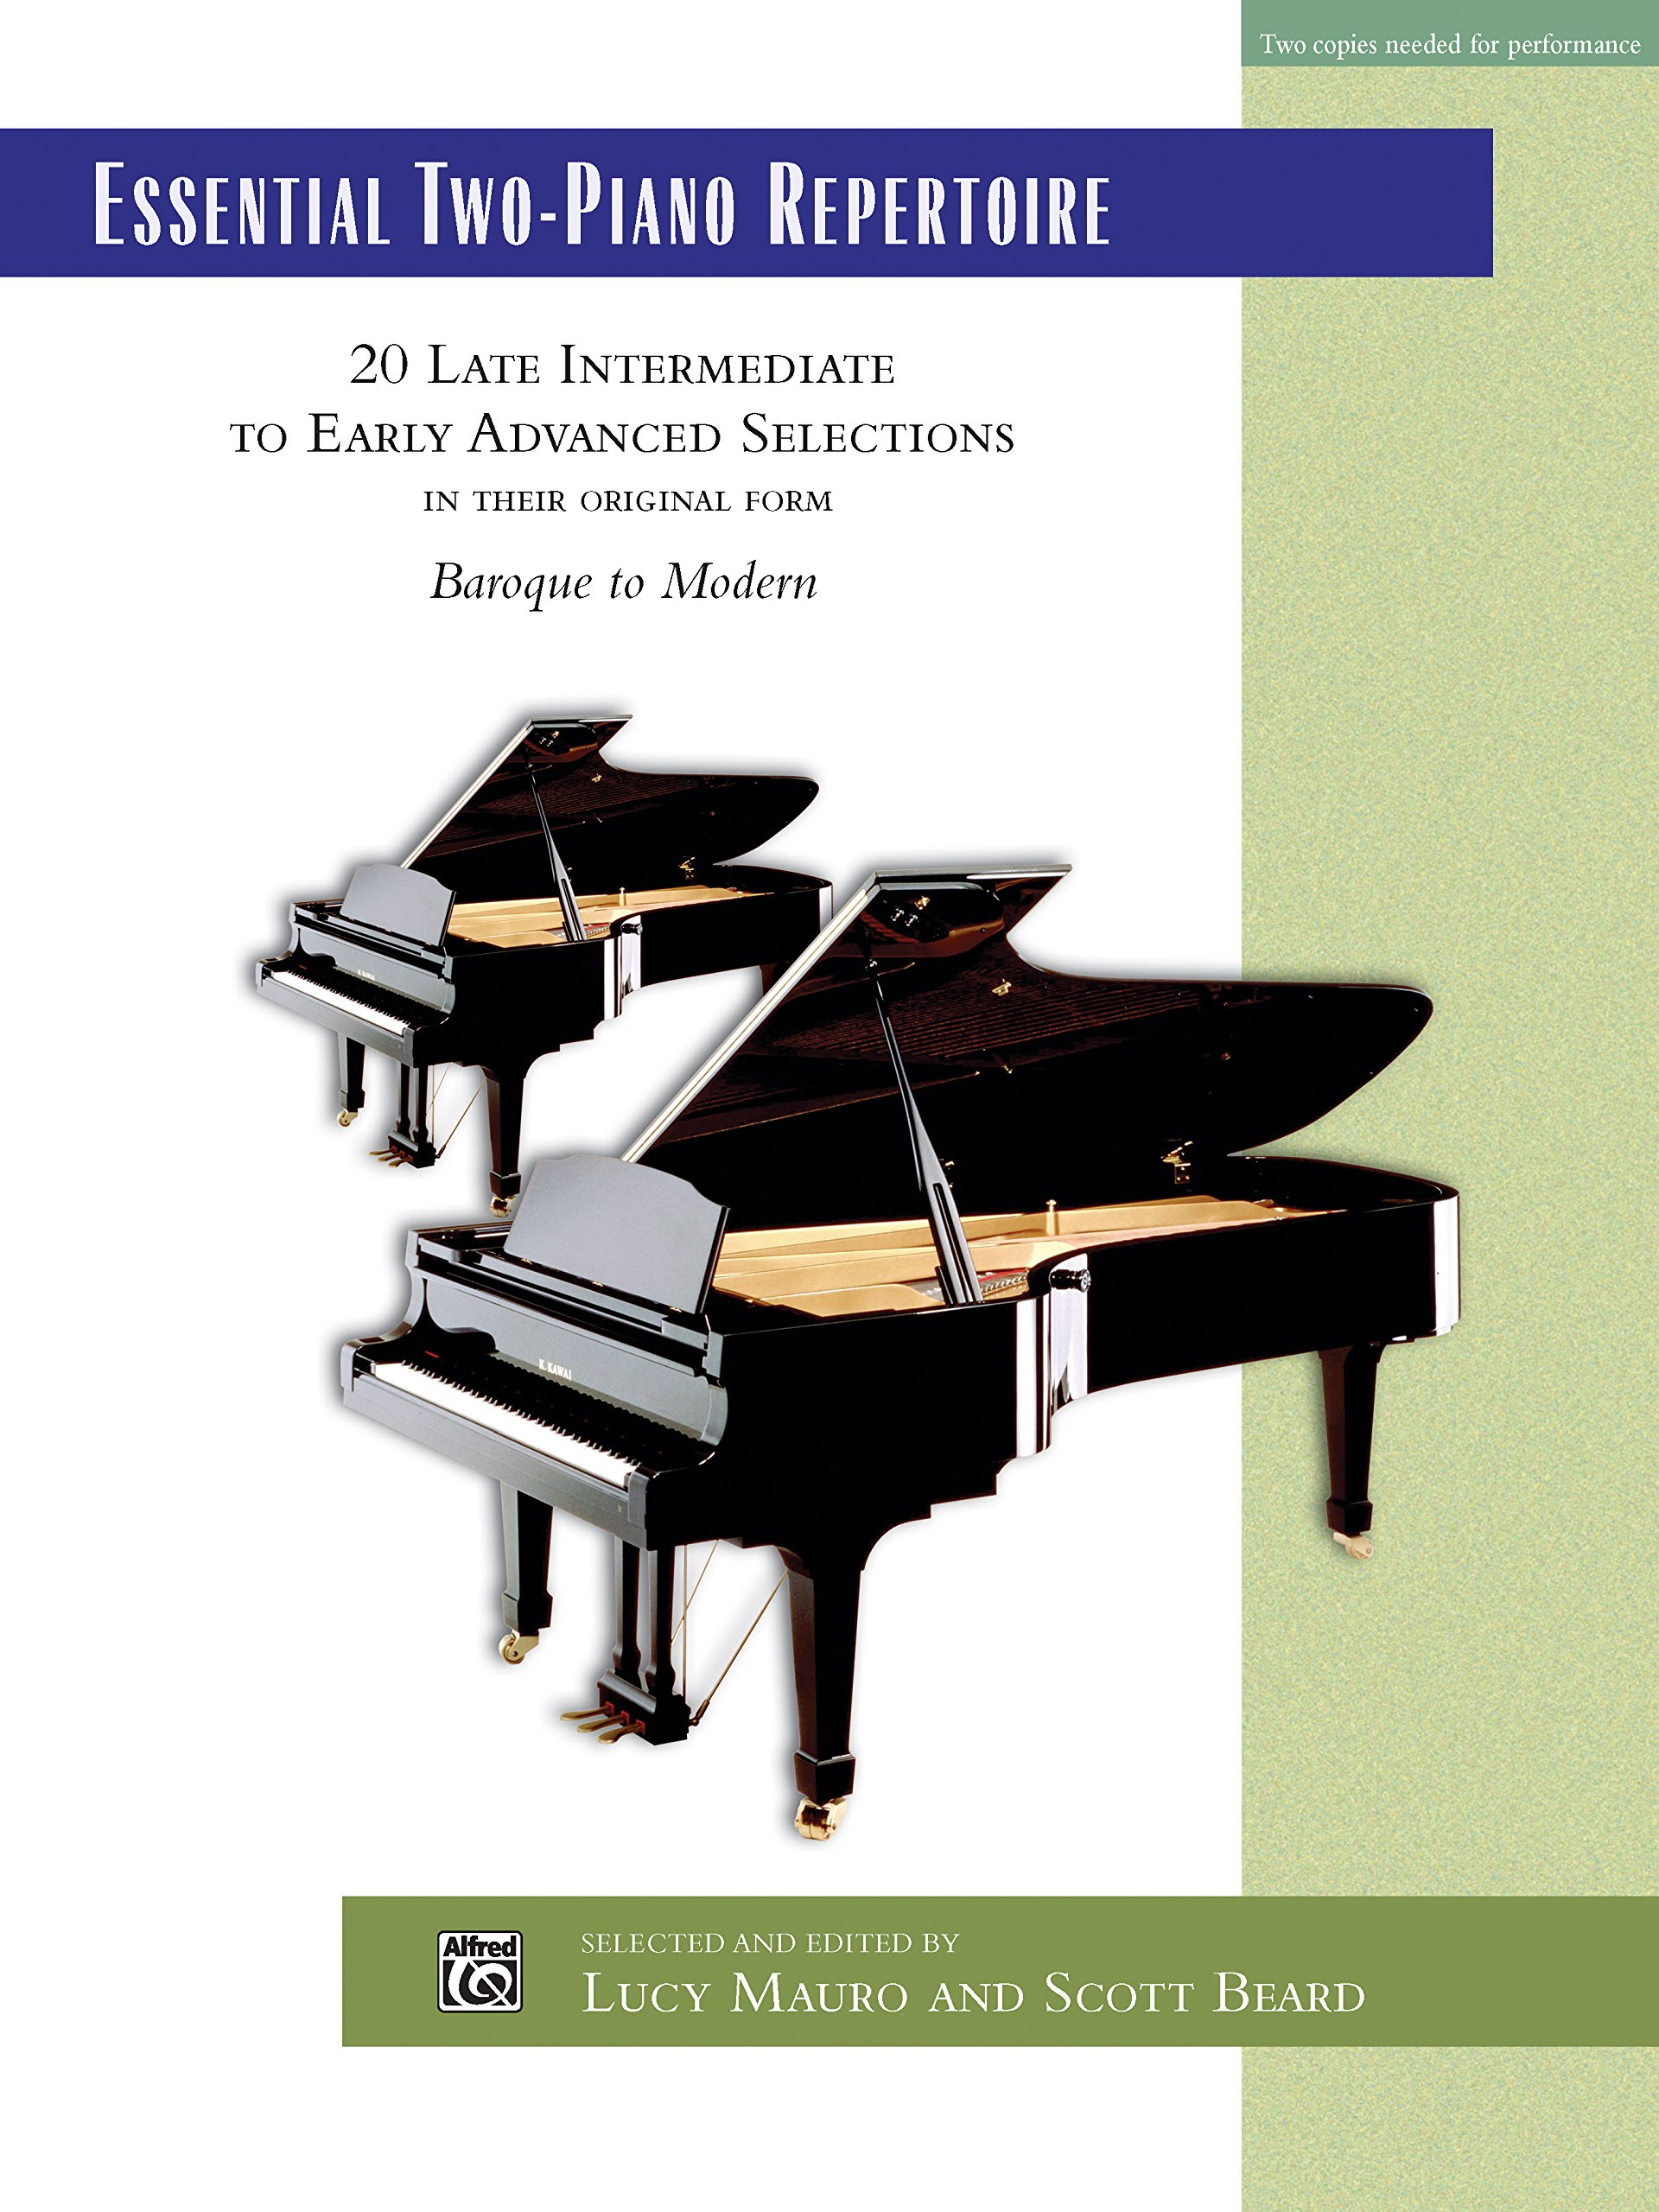 Essential Two-Piano Repertoire: 20 Late Intermediate to Early Advanced Selections in Their Original Form, Comb Bound Book (Alfred Masterwork Edition: Essential Keyboard Repertoire) pdf